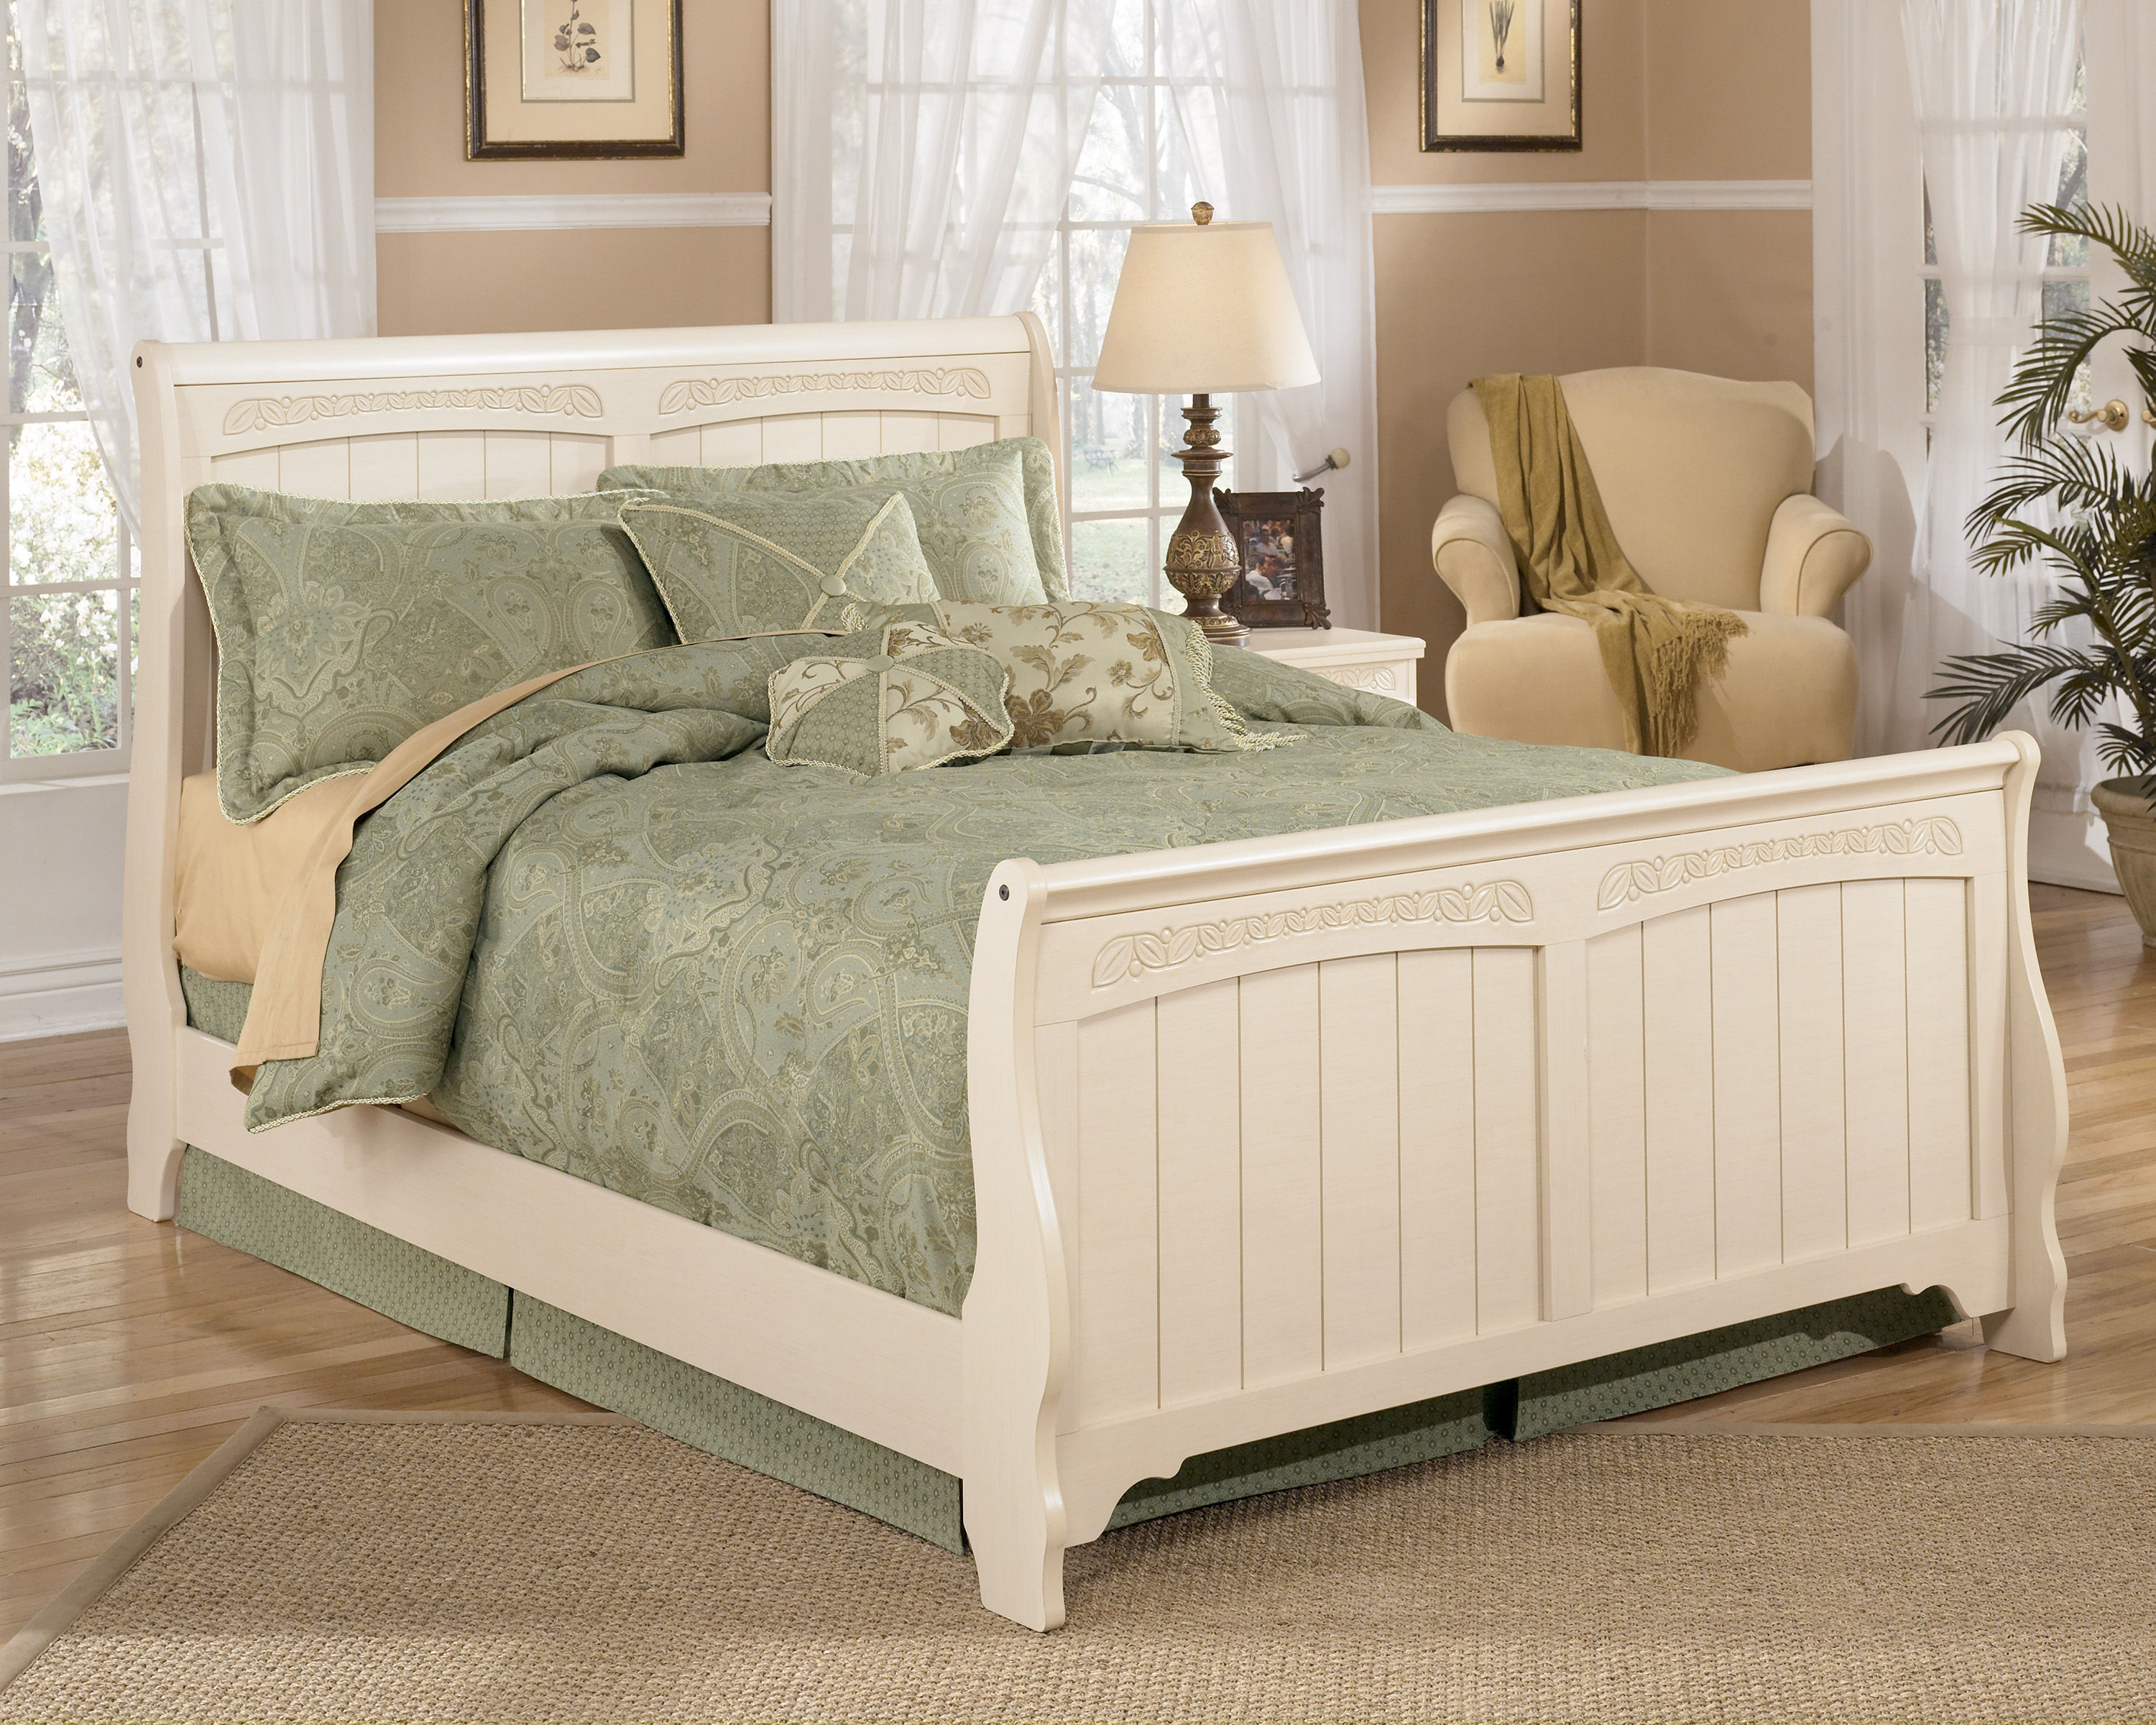 Ashley Furniture Cottage Retreat Full Sleigh Bed | The ...